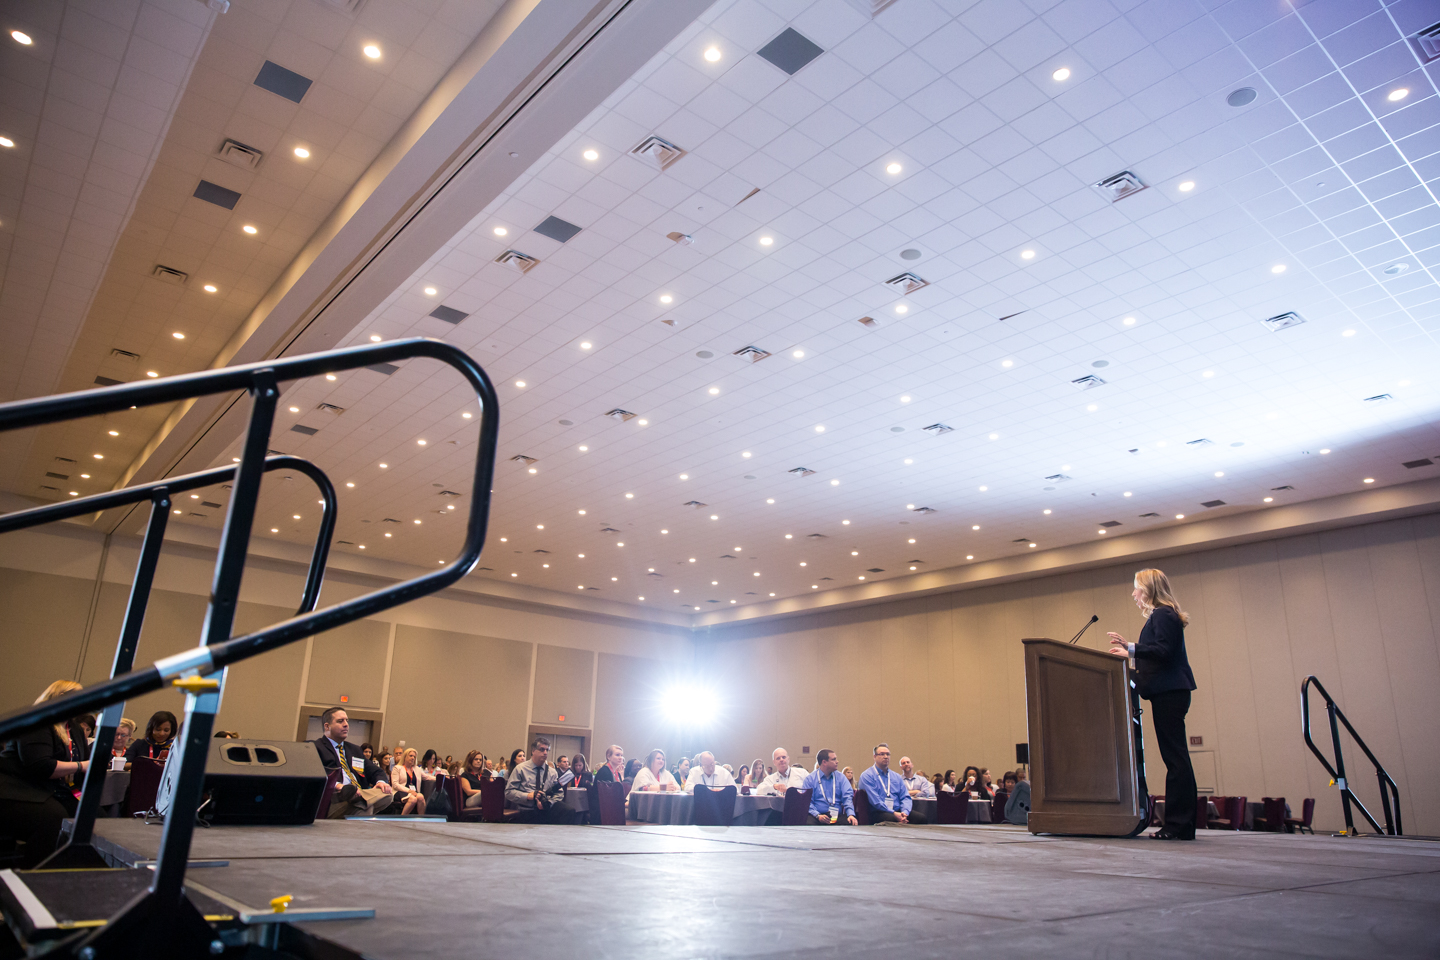 AAPPR-Conference-Expo-Professional-Event-Photography-Photographer-Orlando-backstage-podium-10.jpg